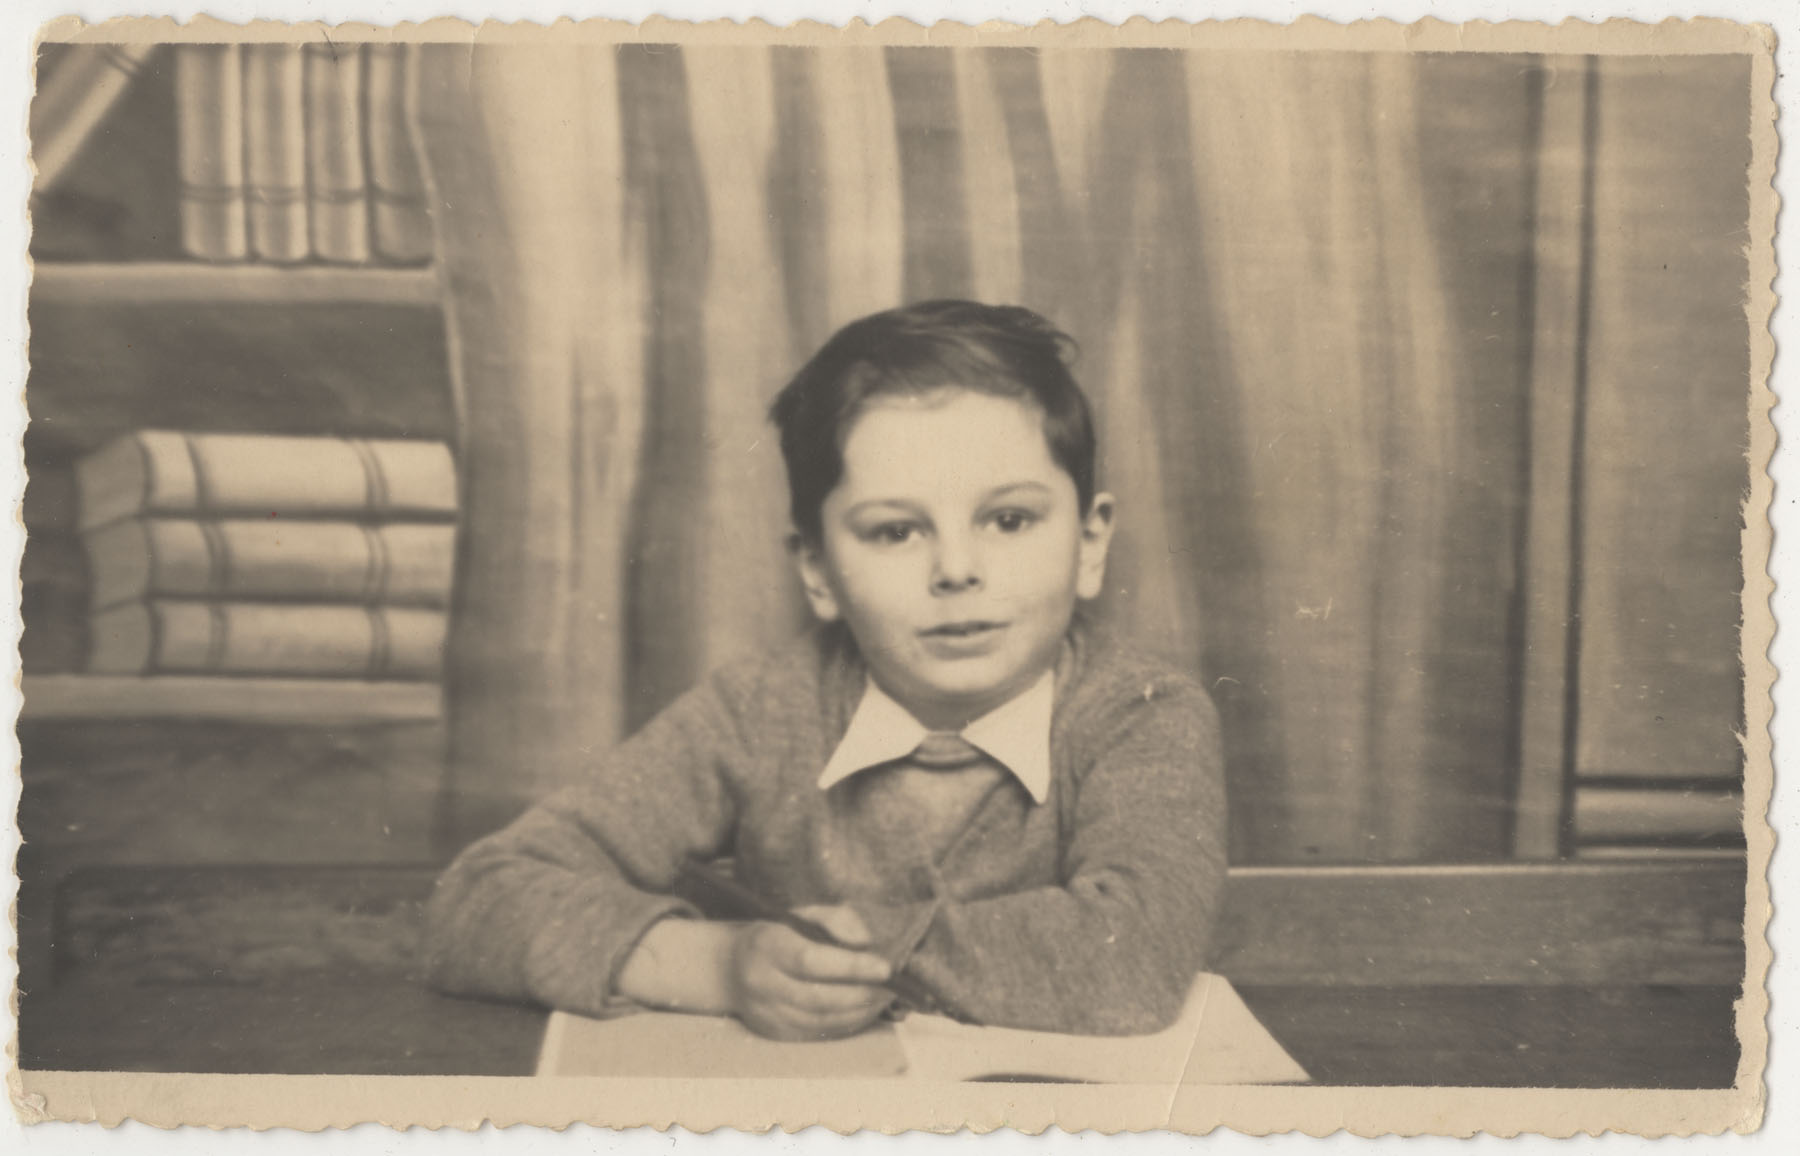 Marcel in first grade at Schaerbeek primary school in Brussels, 1942.